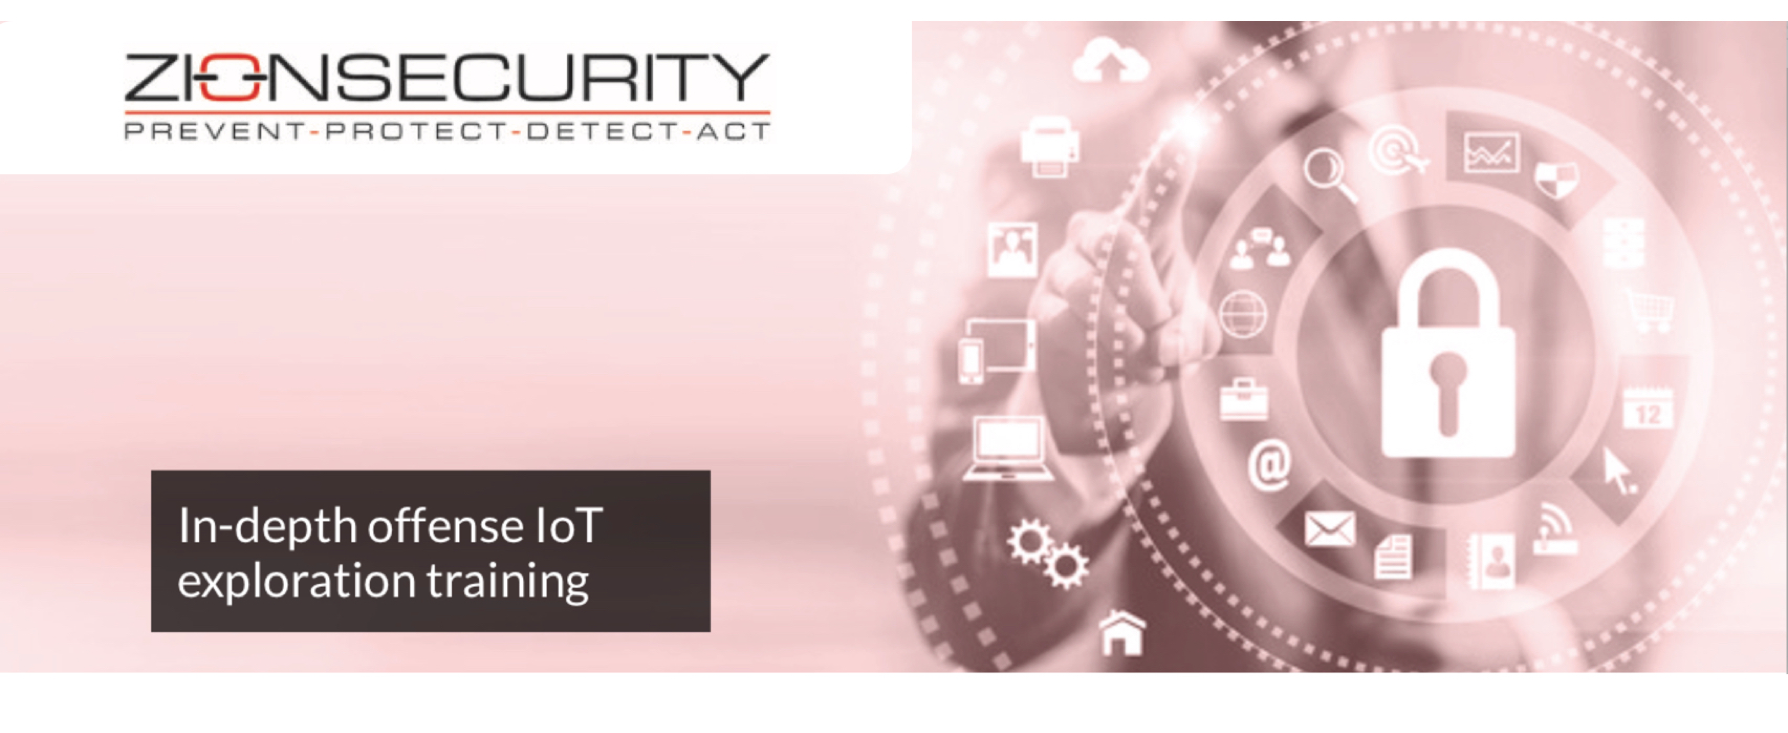 https://www.zionsecurity.com/event/depth-offensive-iot-exploitation-training-248